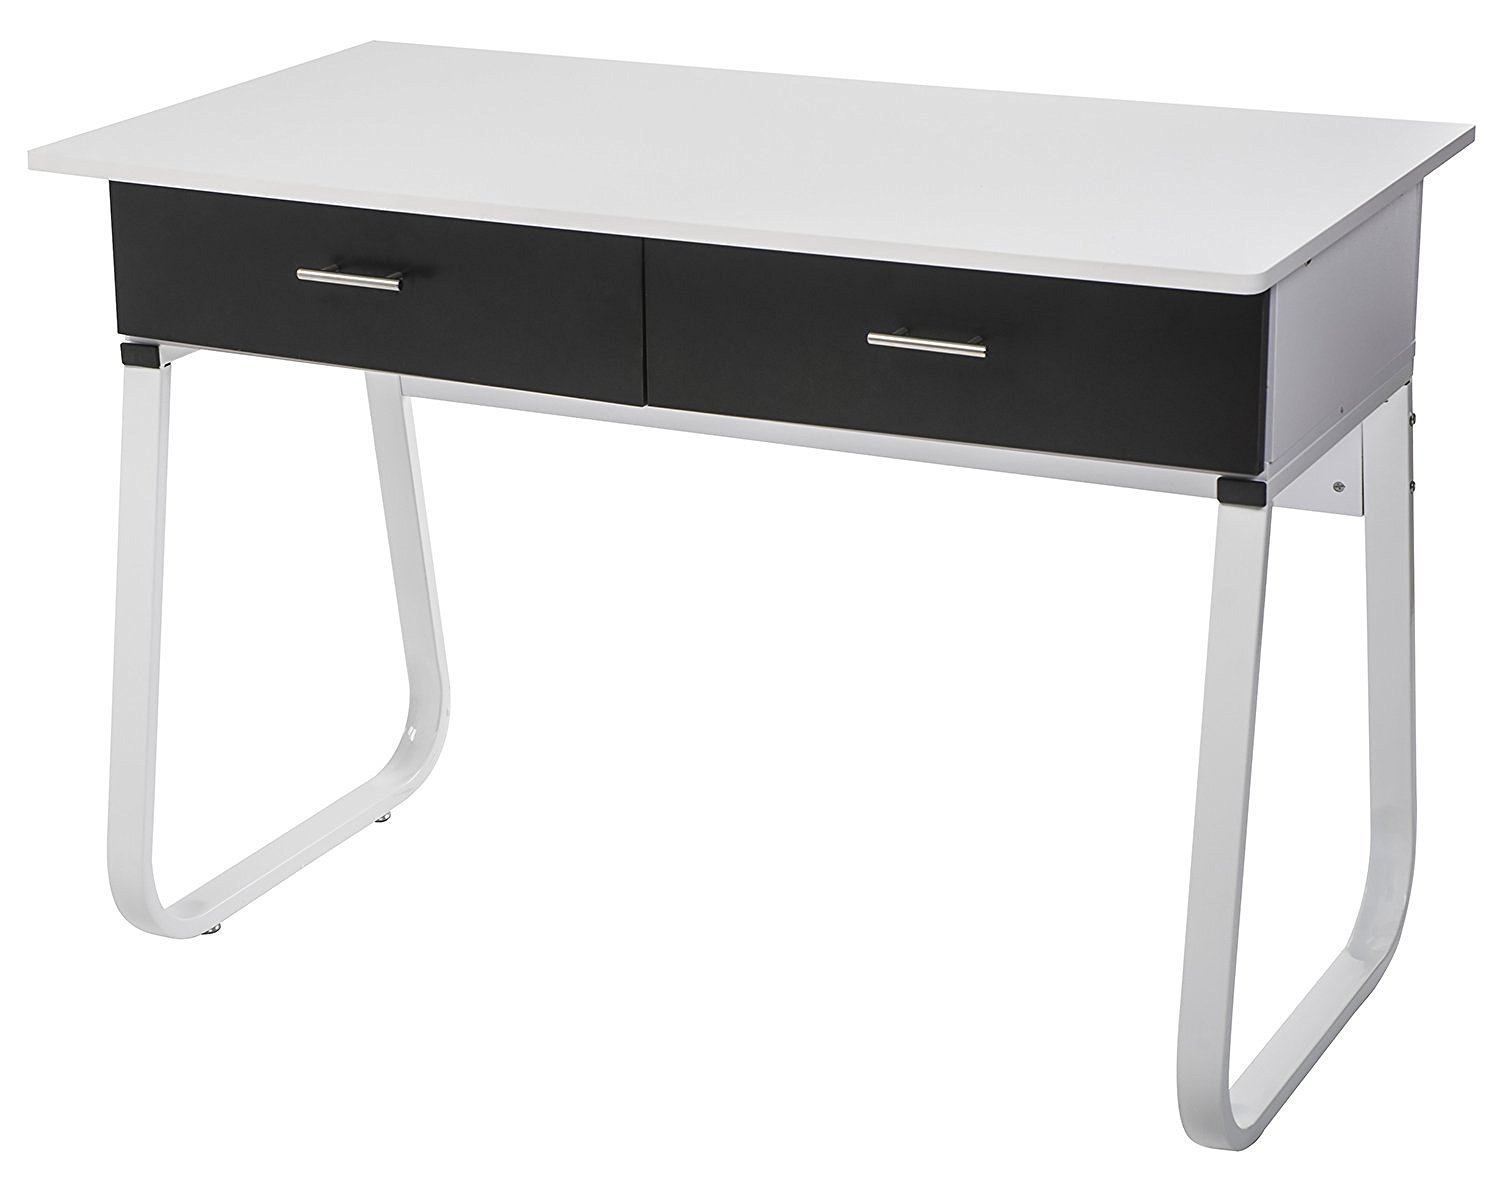 【Lowest Price FIRE SALE】Merax Solid CARB Board Home and Office Computer Writing Desk Table ,Office Desk with Drawers ,White